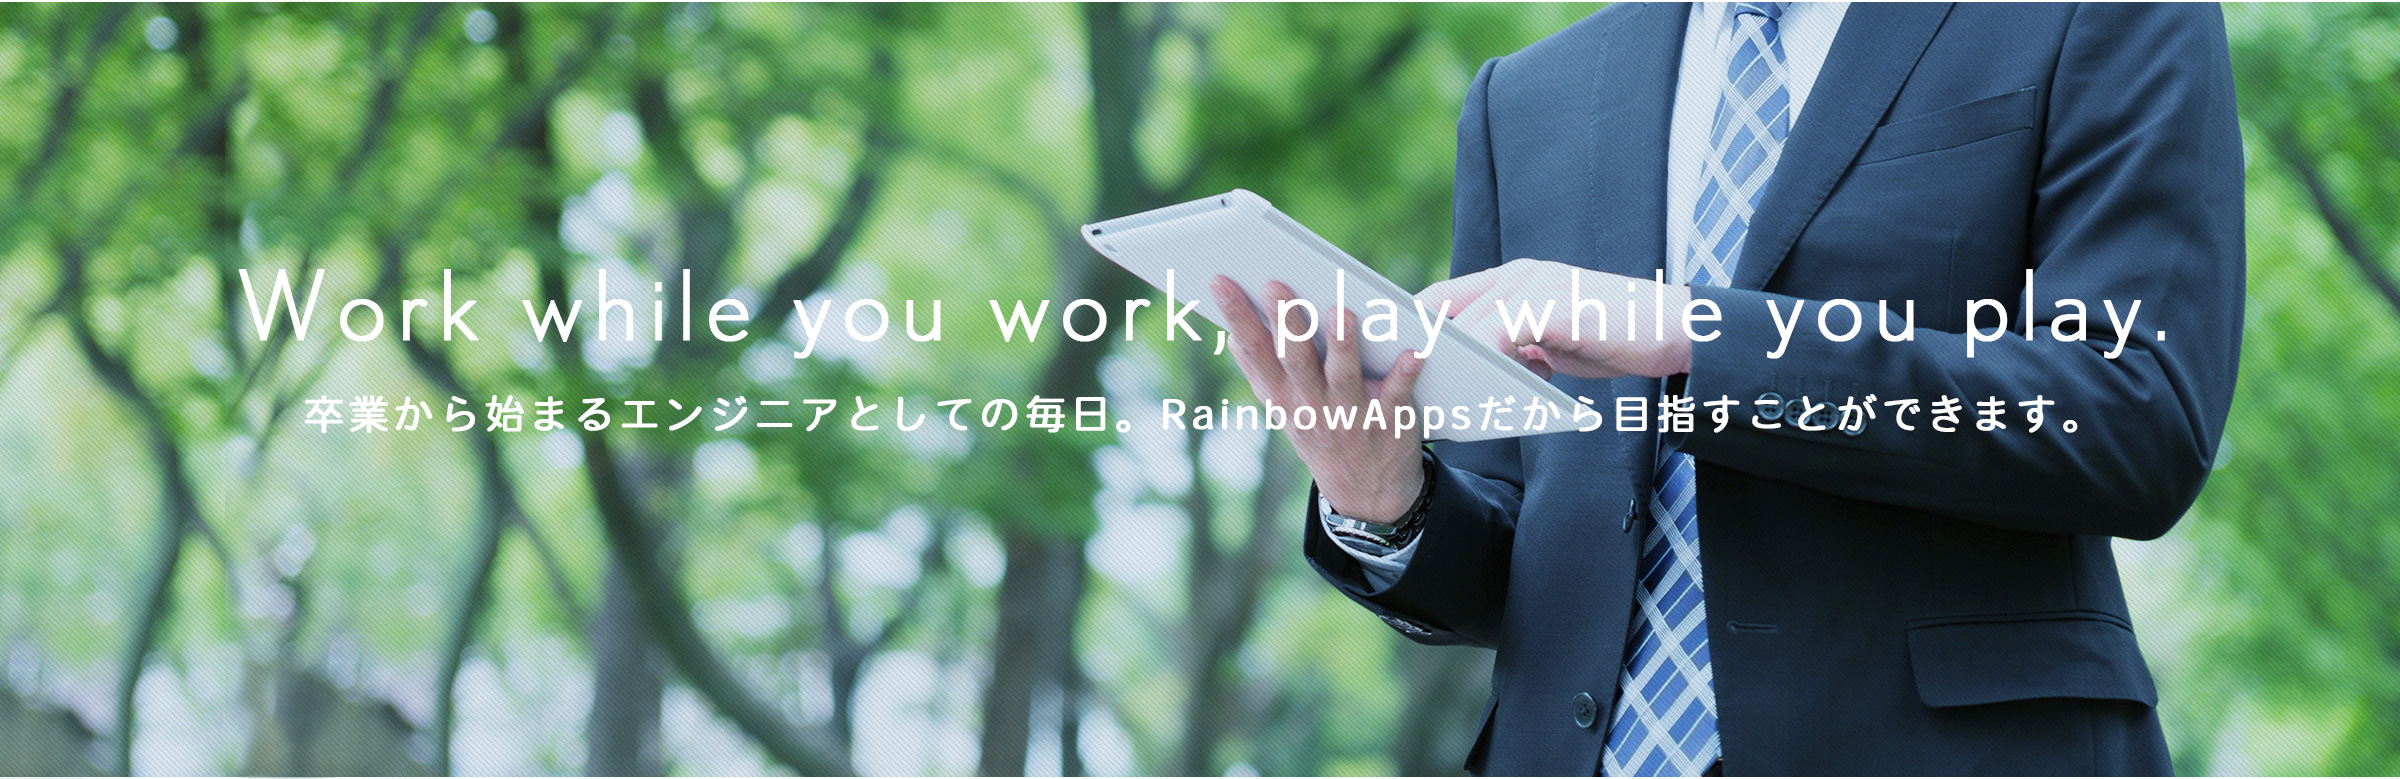 Work while you work, play while you play. 卒業から始まるエンジニアとしての毎日。RainbowAppsだから目指すことができ ます。